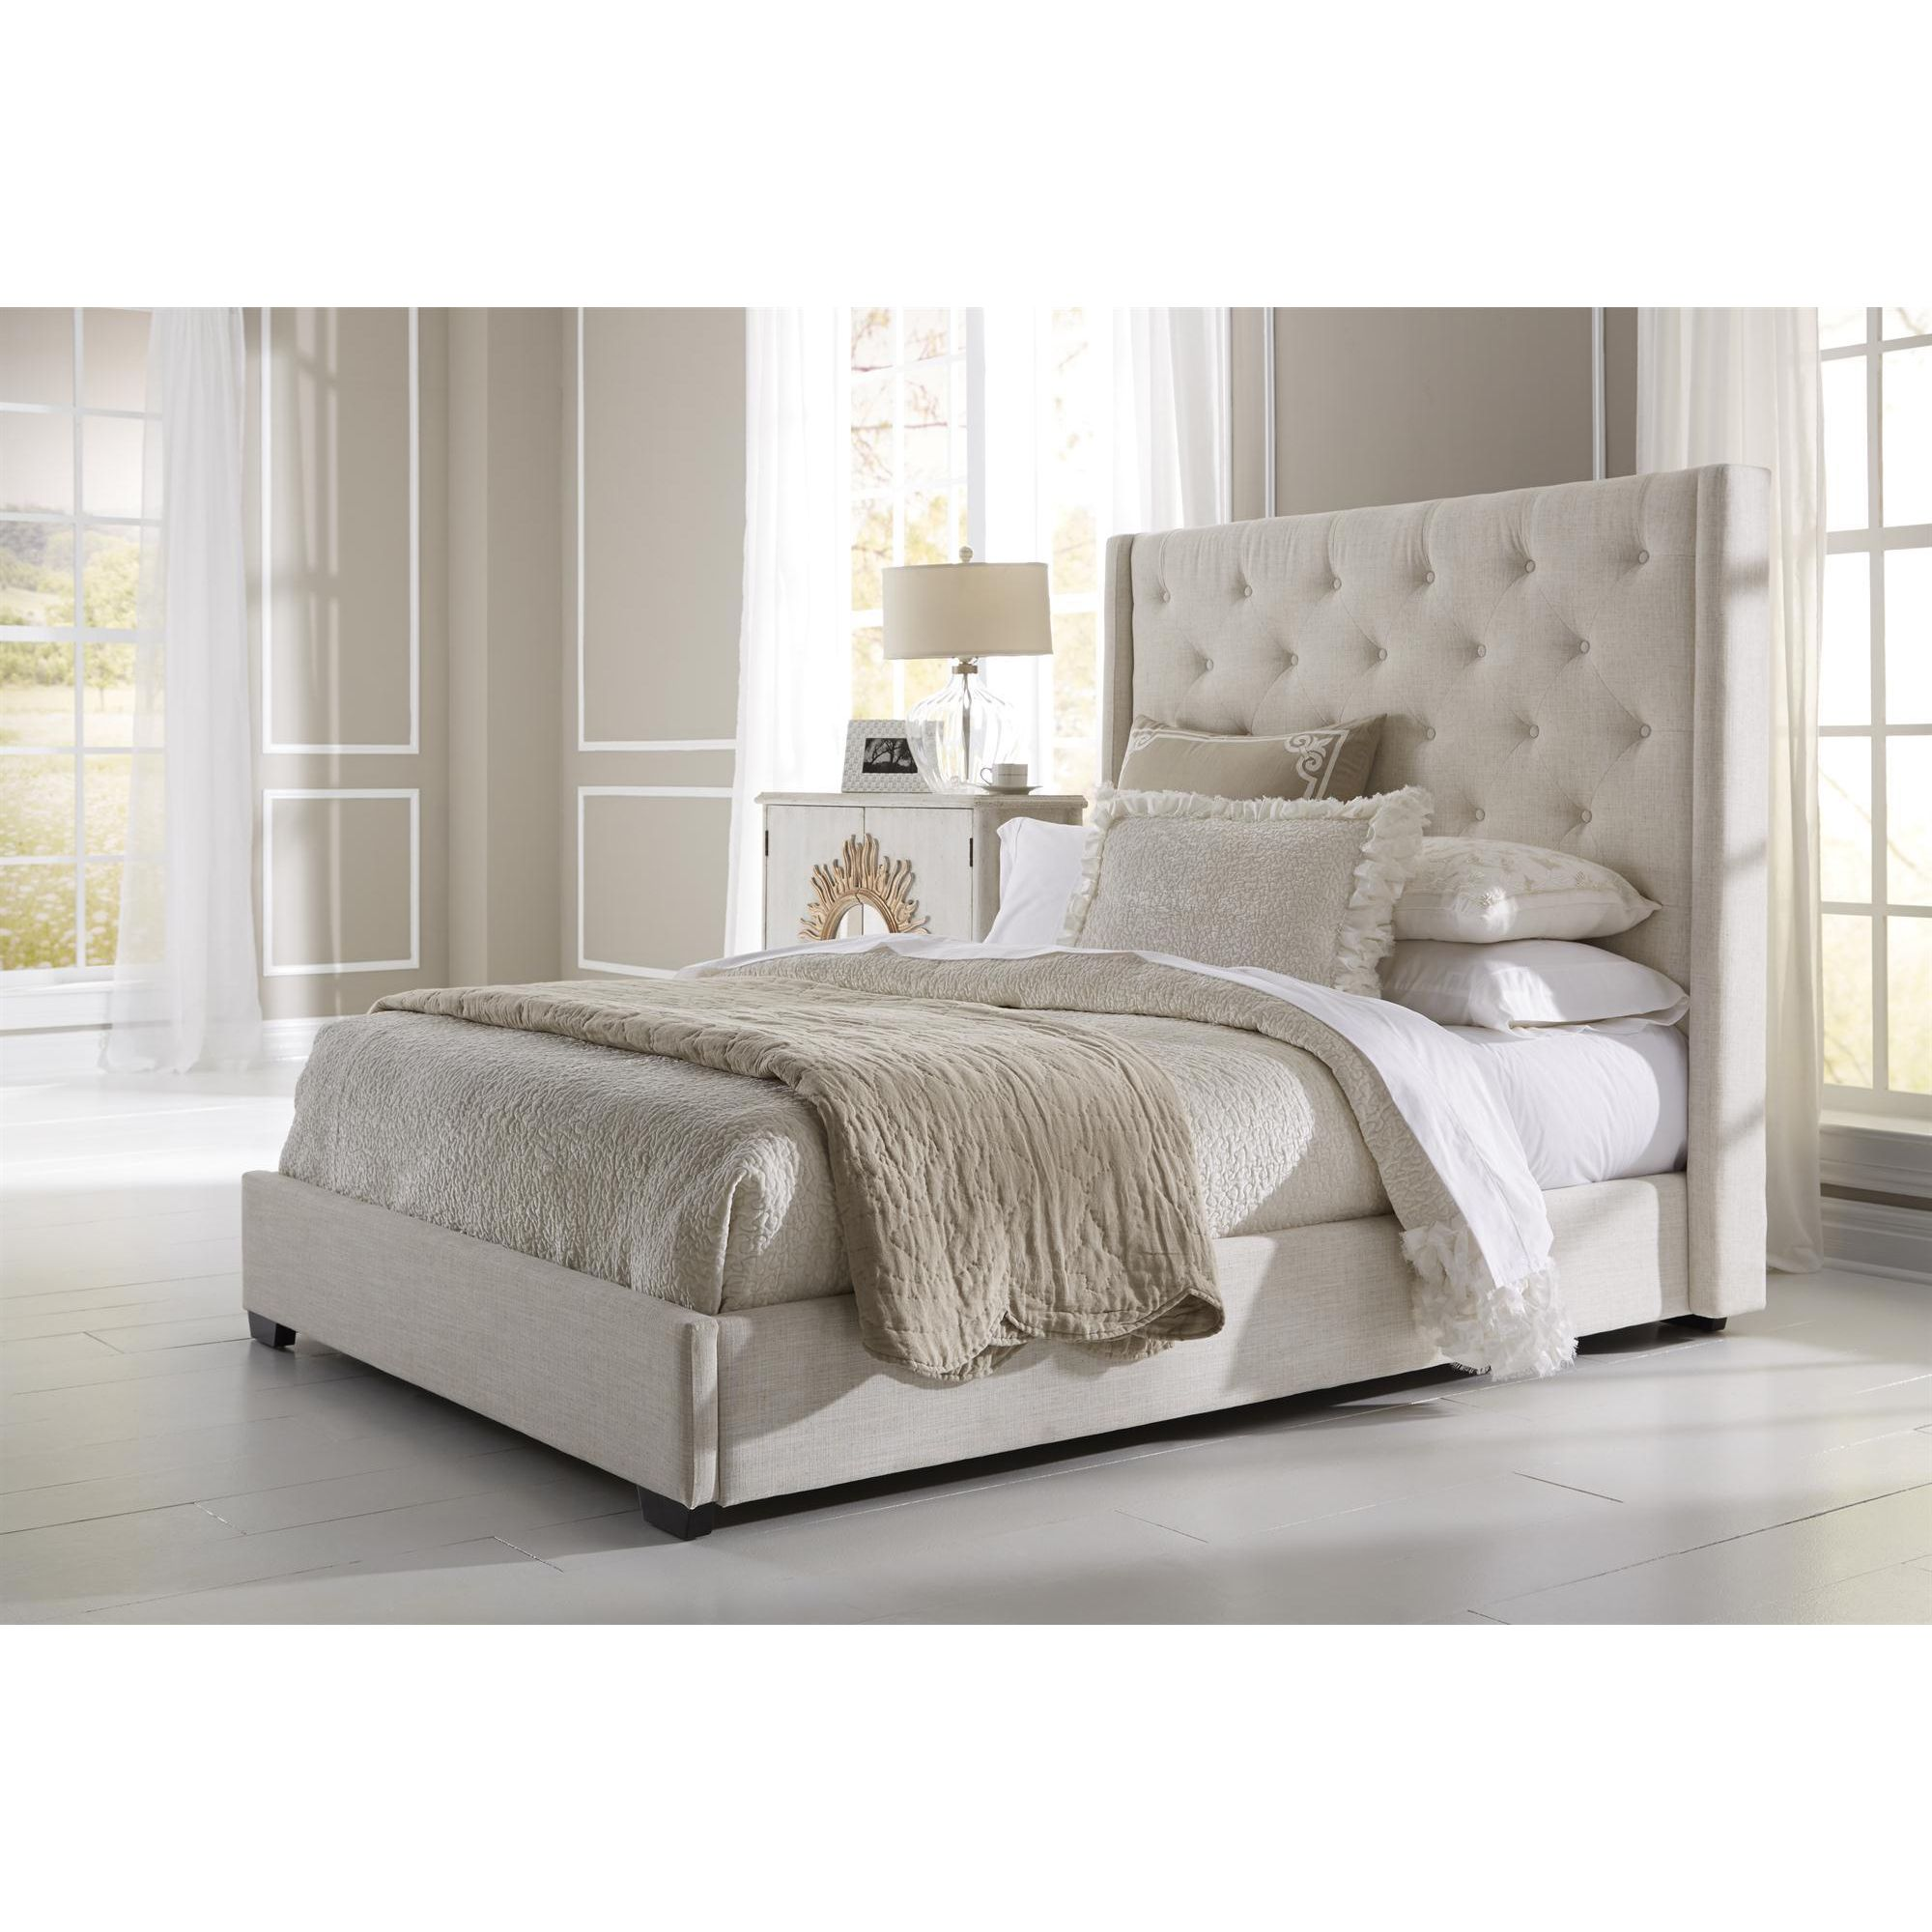 Wingback Button Tufted Cream Queen Size Upholstered Bed - Overstockcom